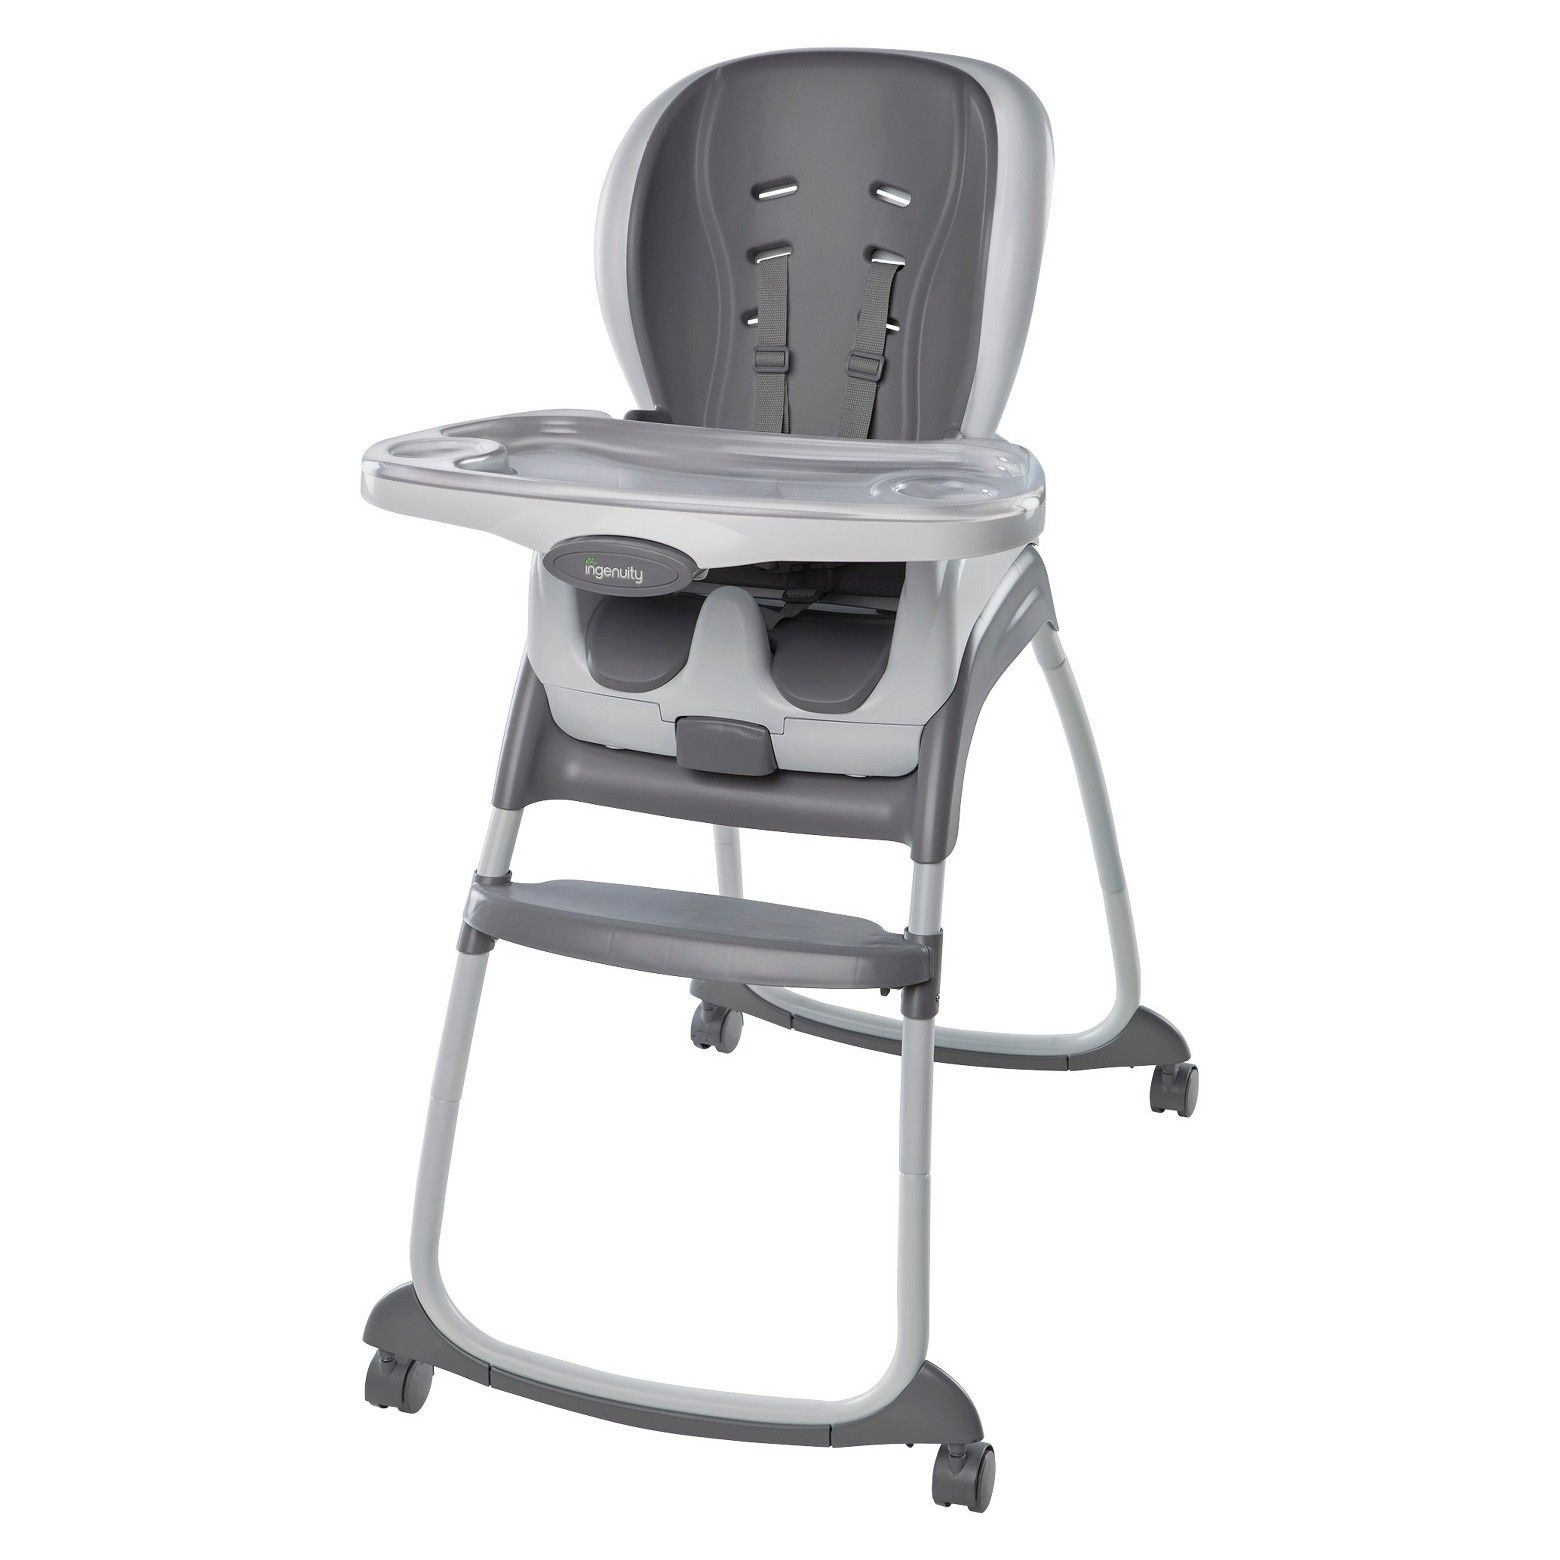 Pin By Stephanie Lindenmuth On Baby Baby High Chair Best High Chairs High Chair